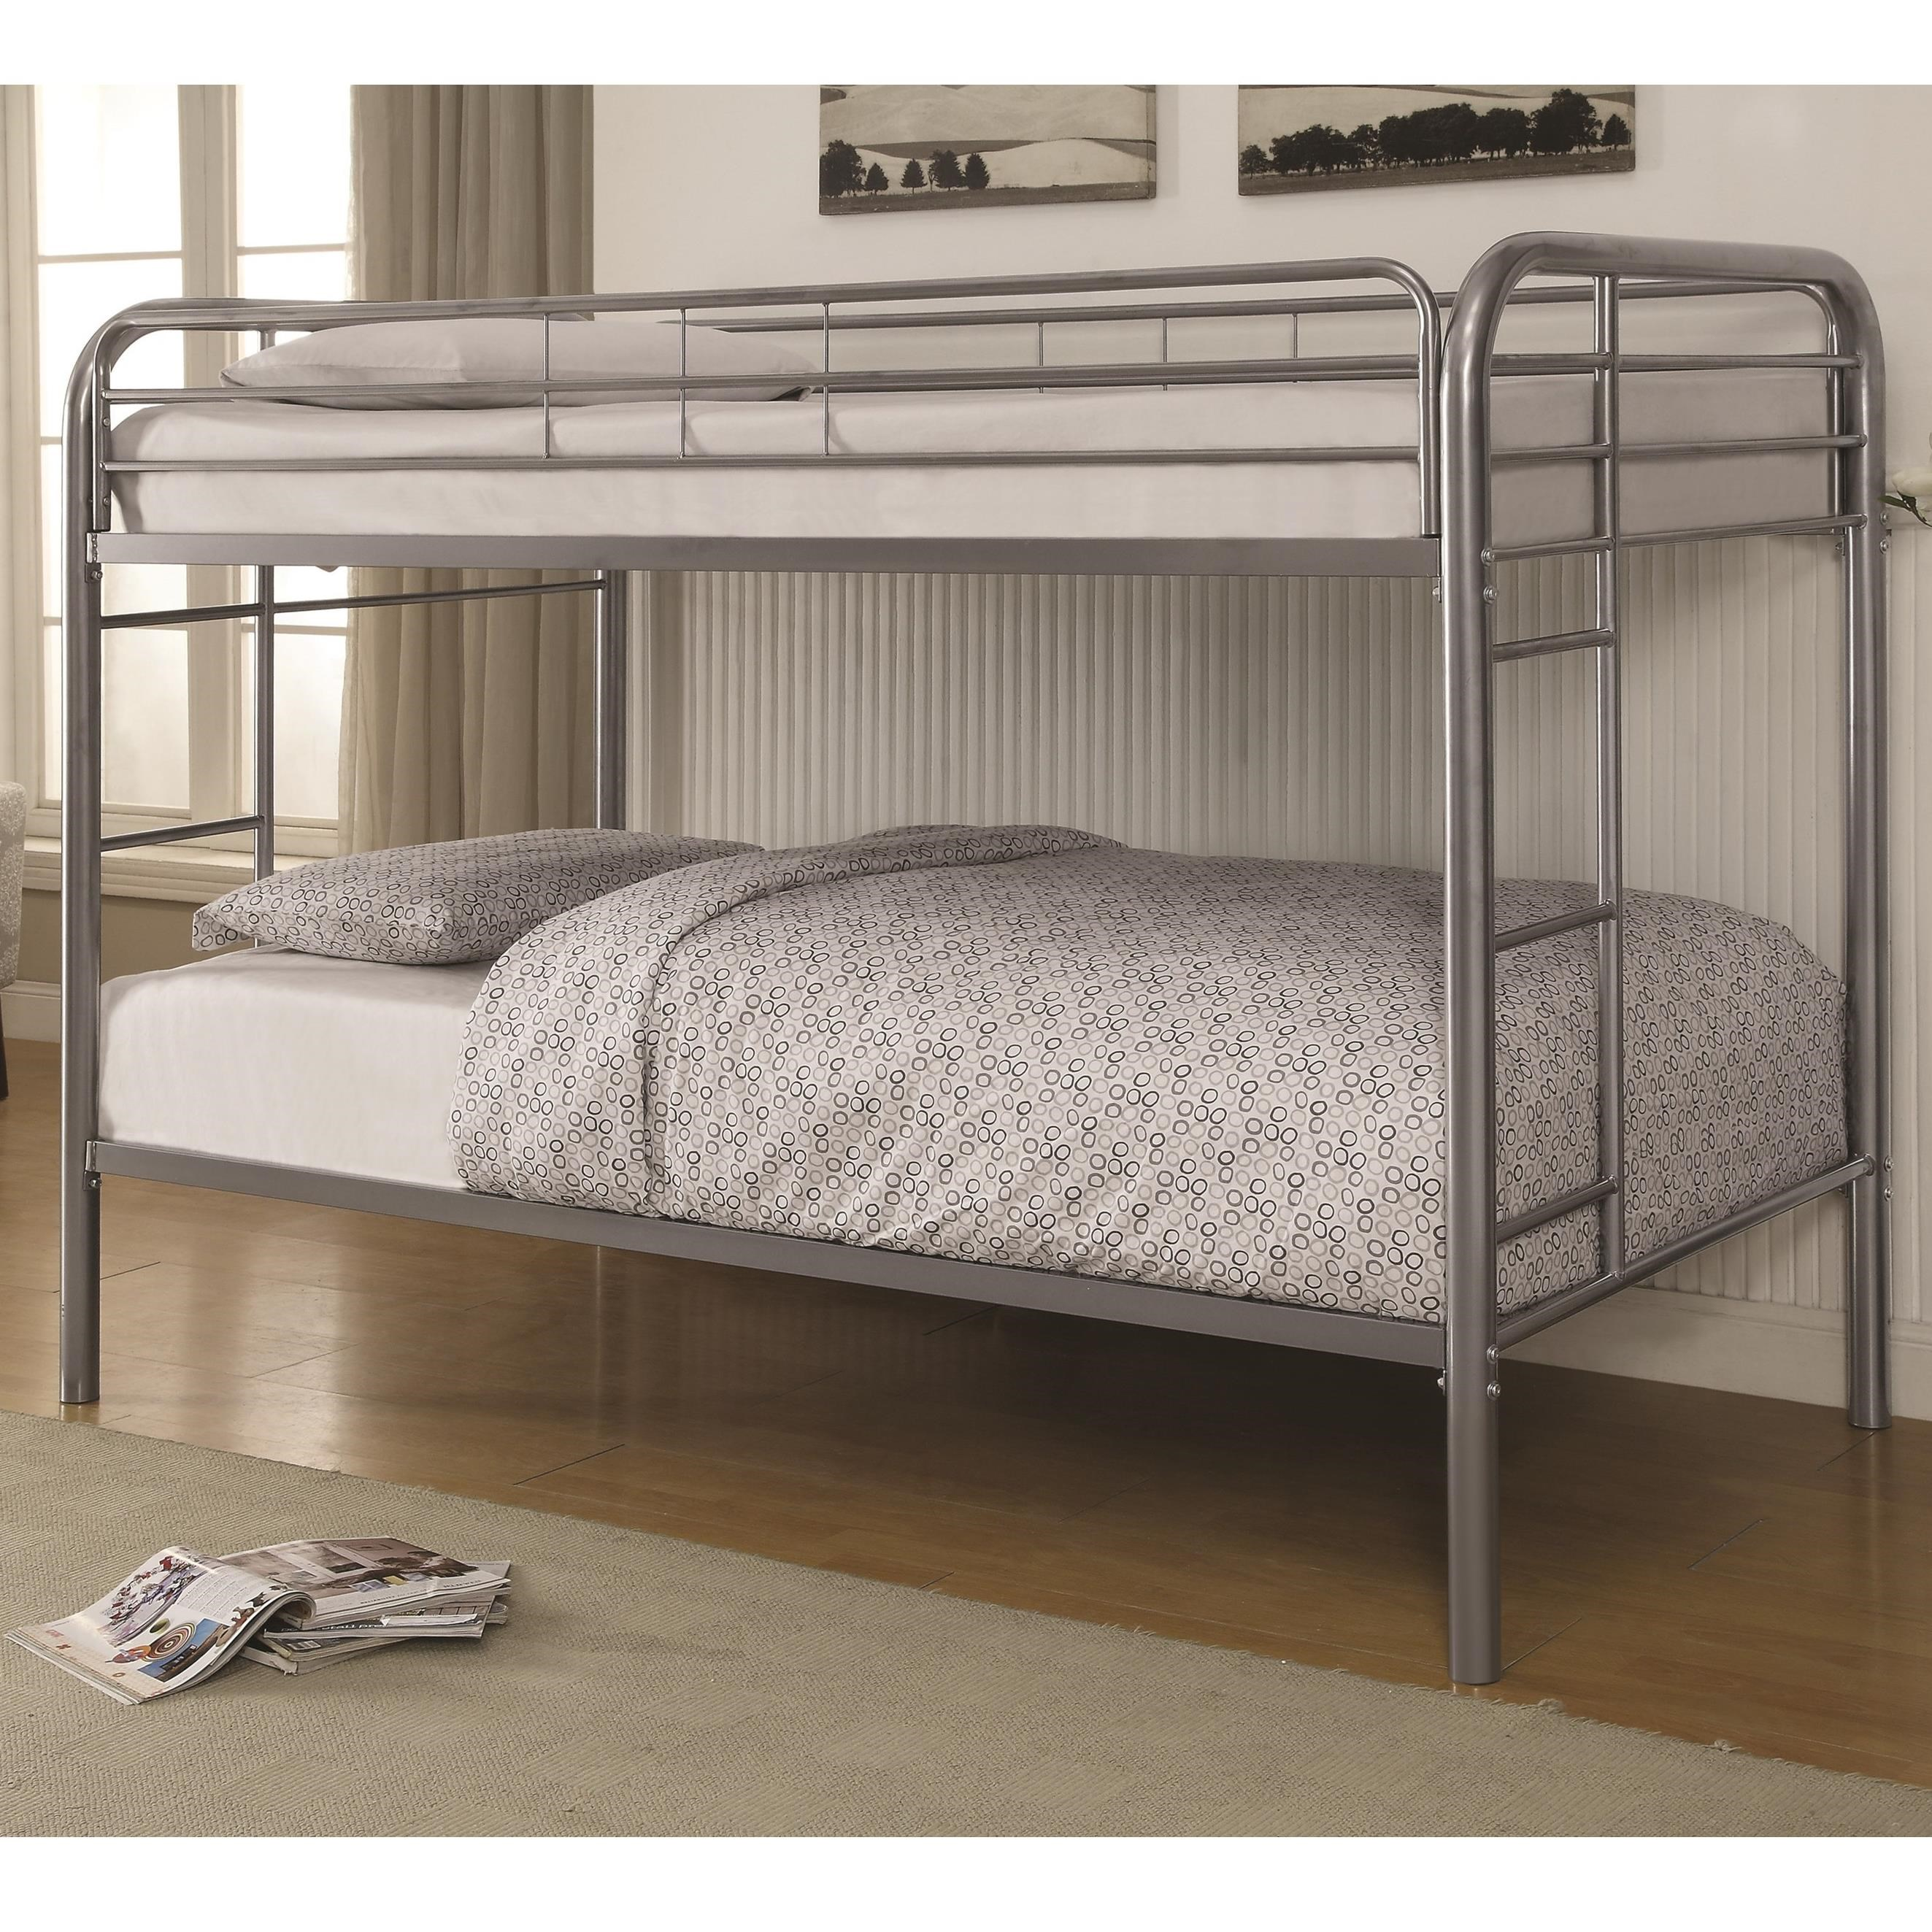 Metal Beds Twin Over Twin Bunk Bed With Built In Ladders